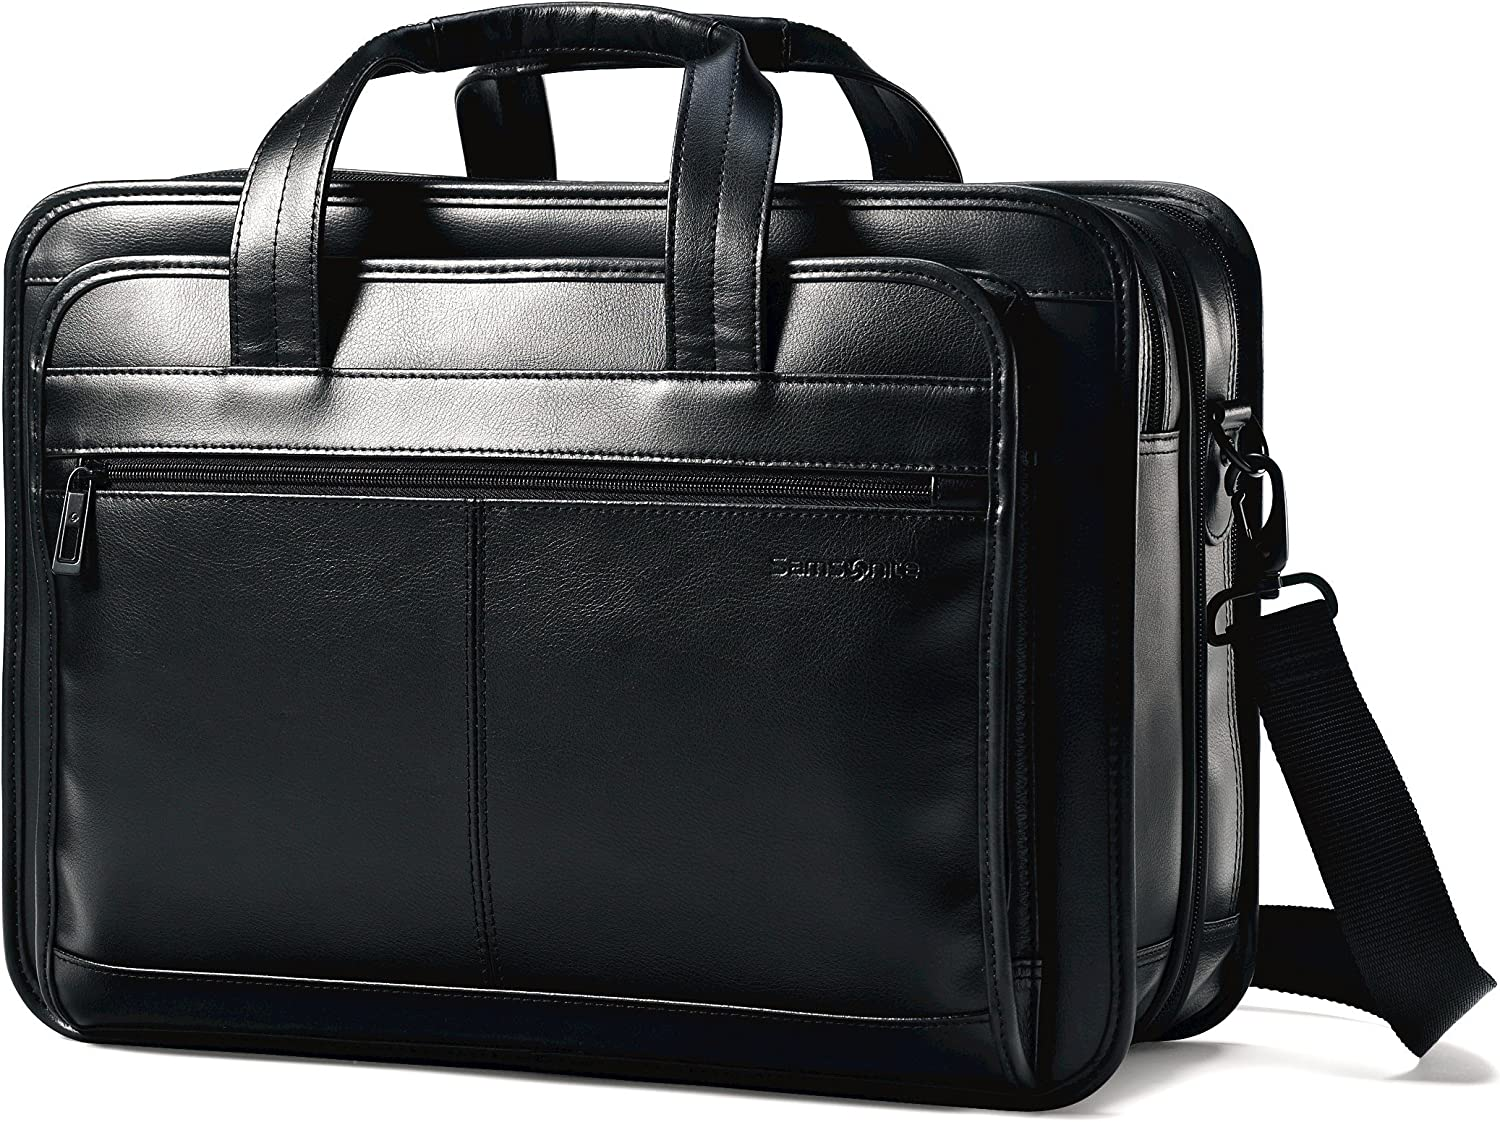 Samsonite leather expandable business case Black Briefcase